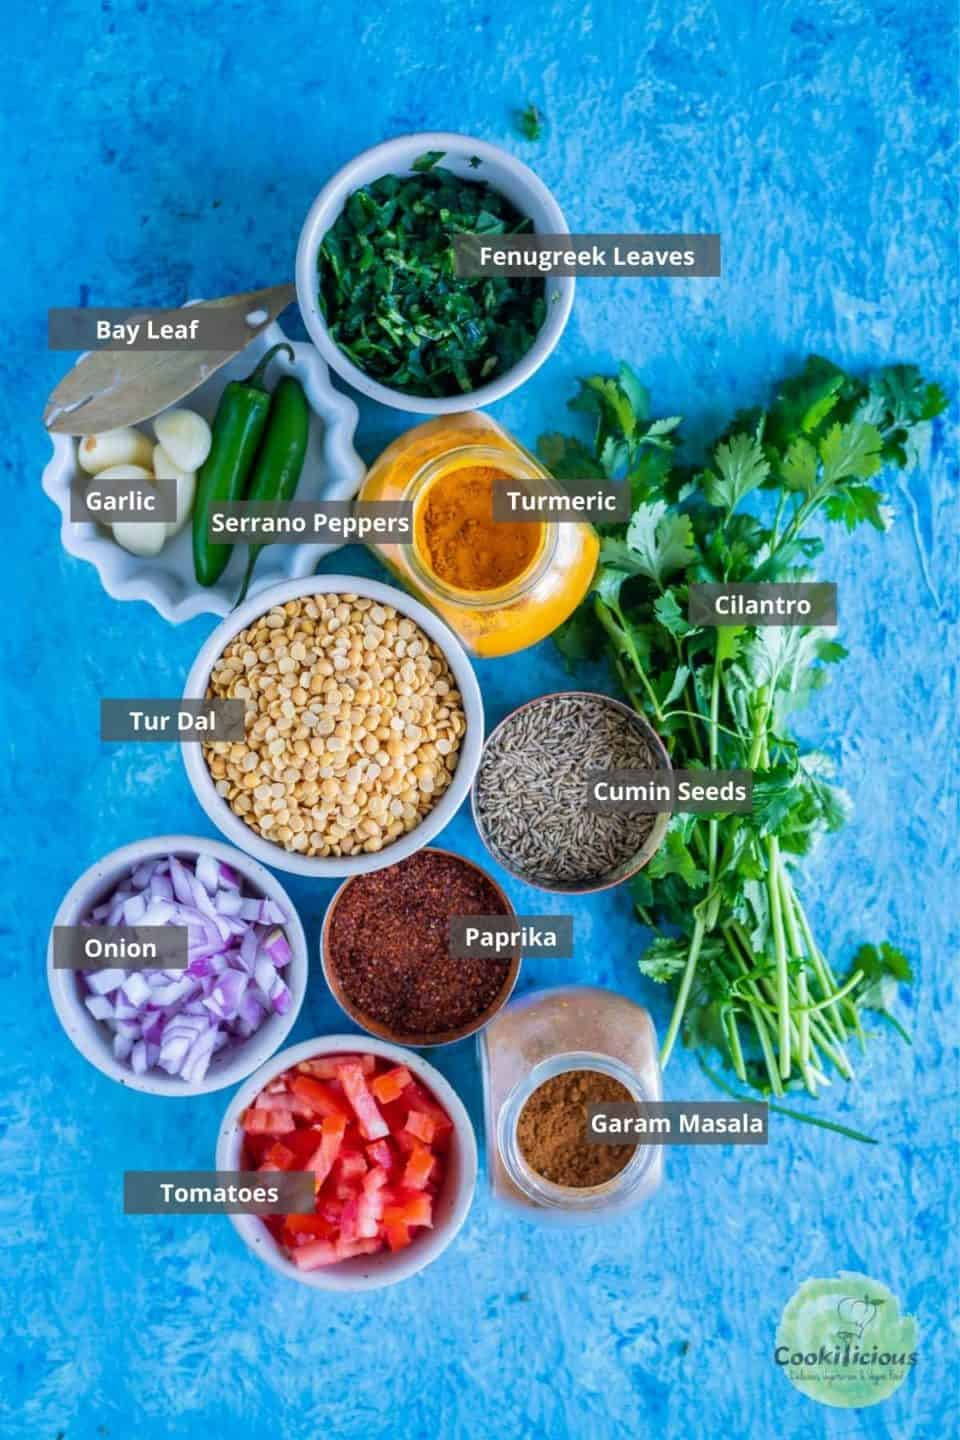 all the ingredients needed to make Methi Dal placed on the table with labels on them